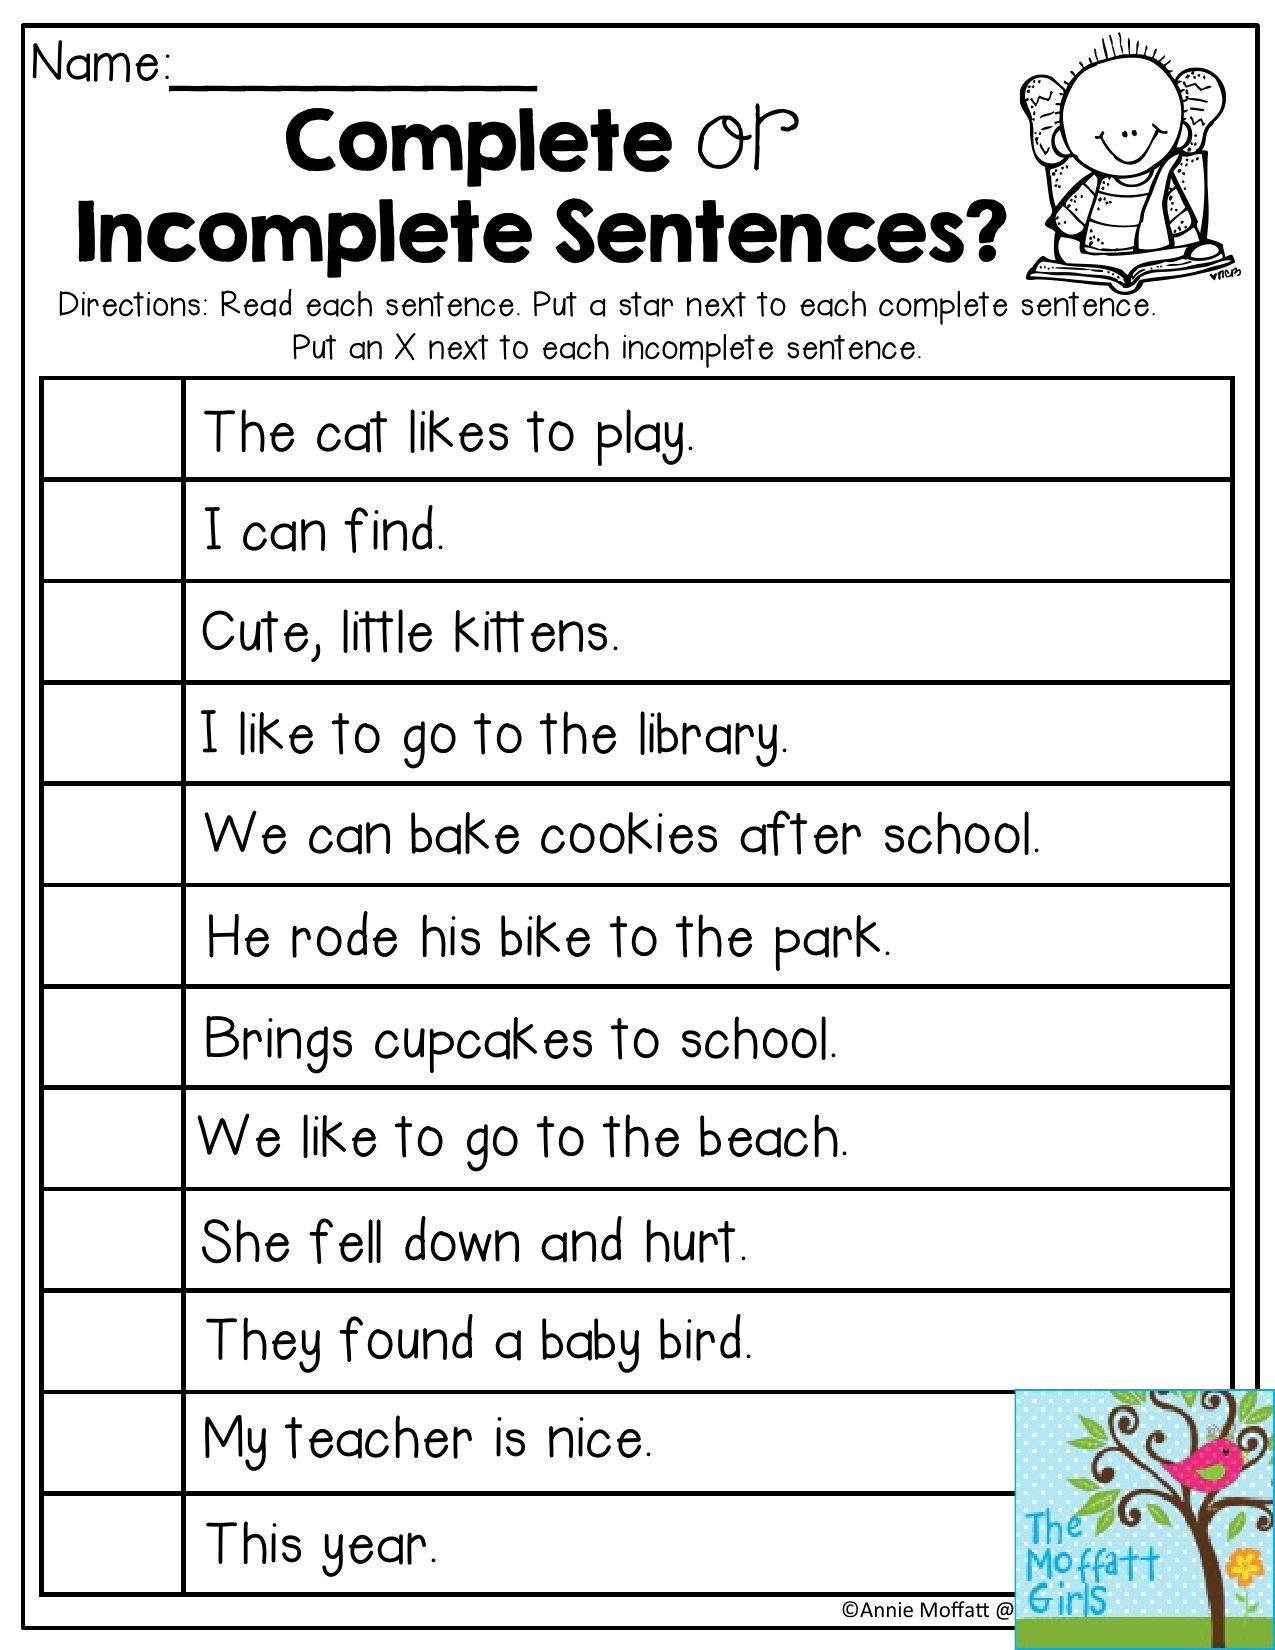 Complete Sentence Worksheets 3rd Grade Plete or In Plete Sentences Read Each Sentence and